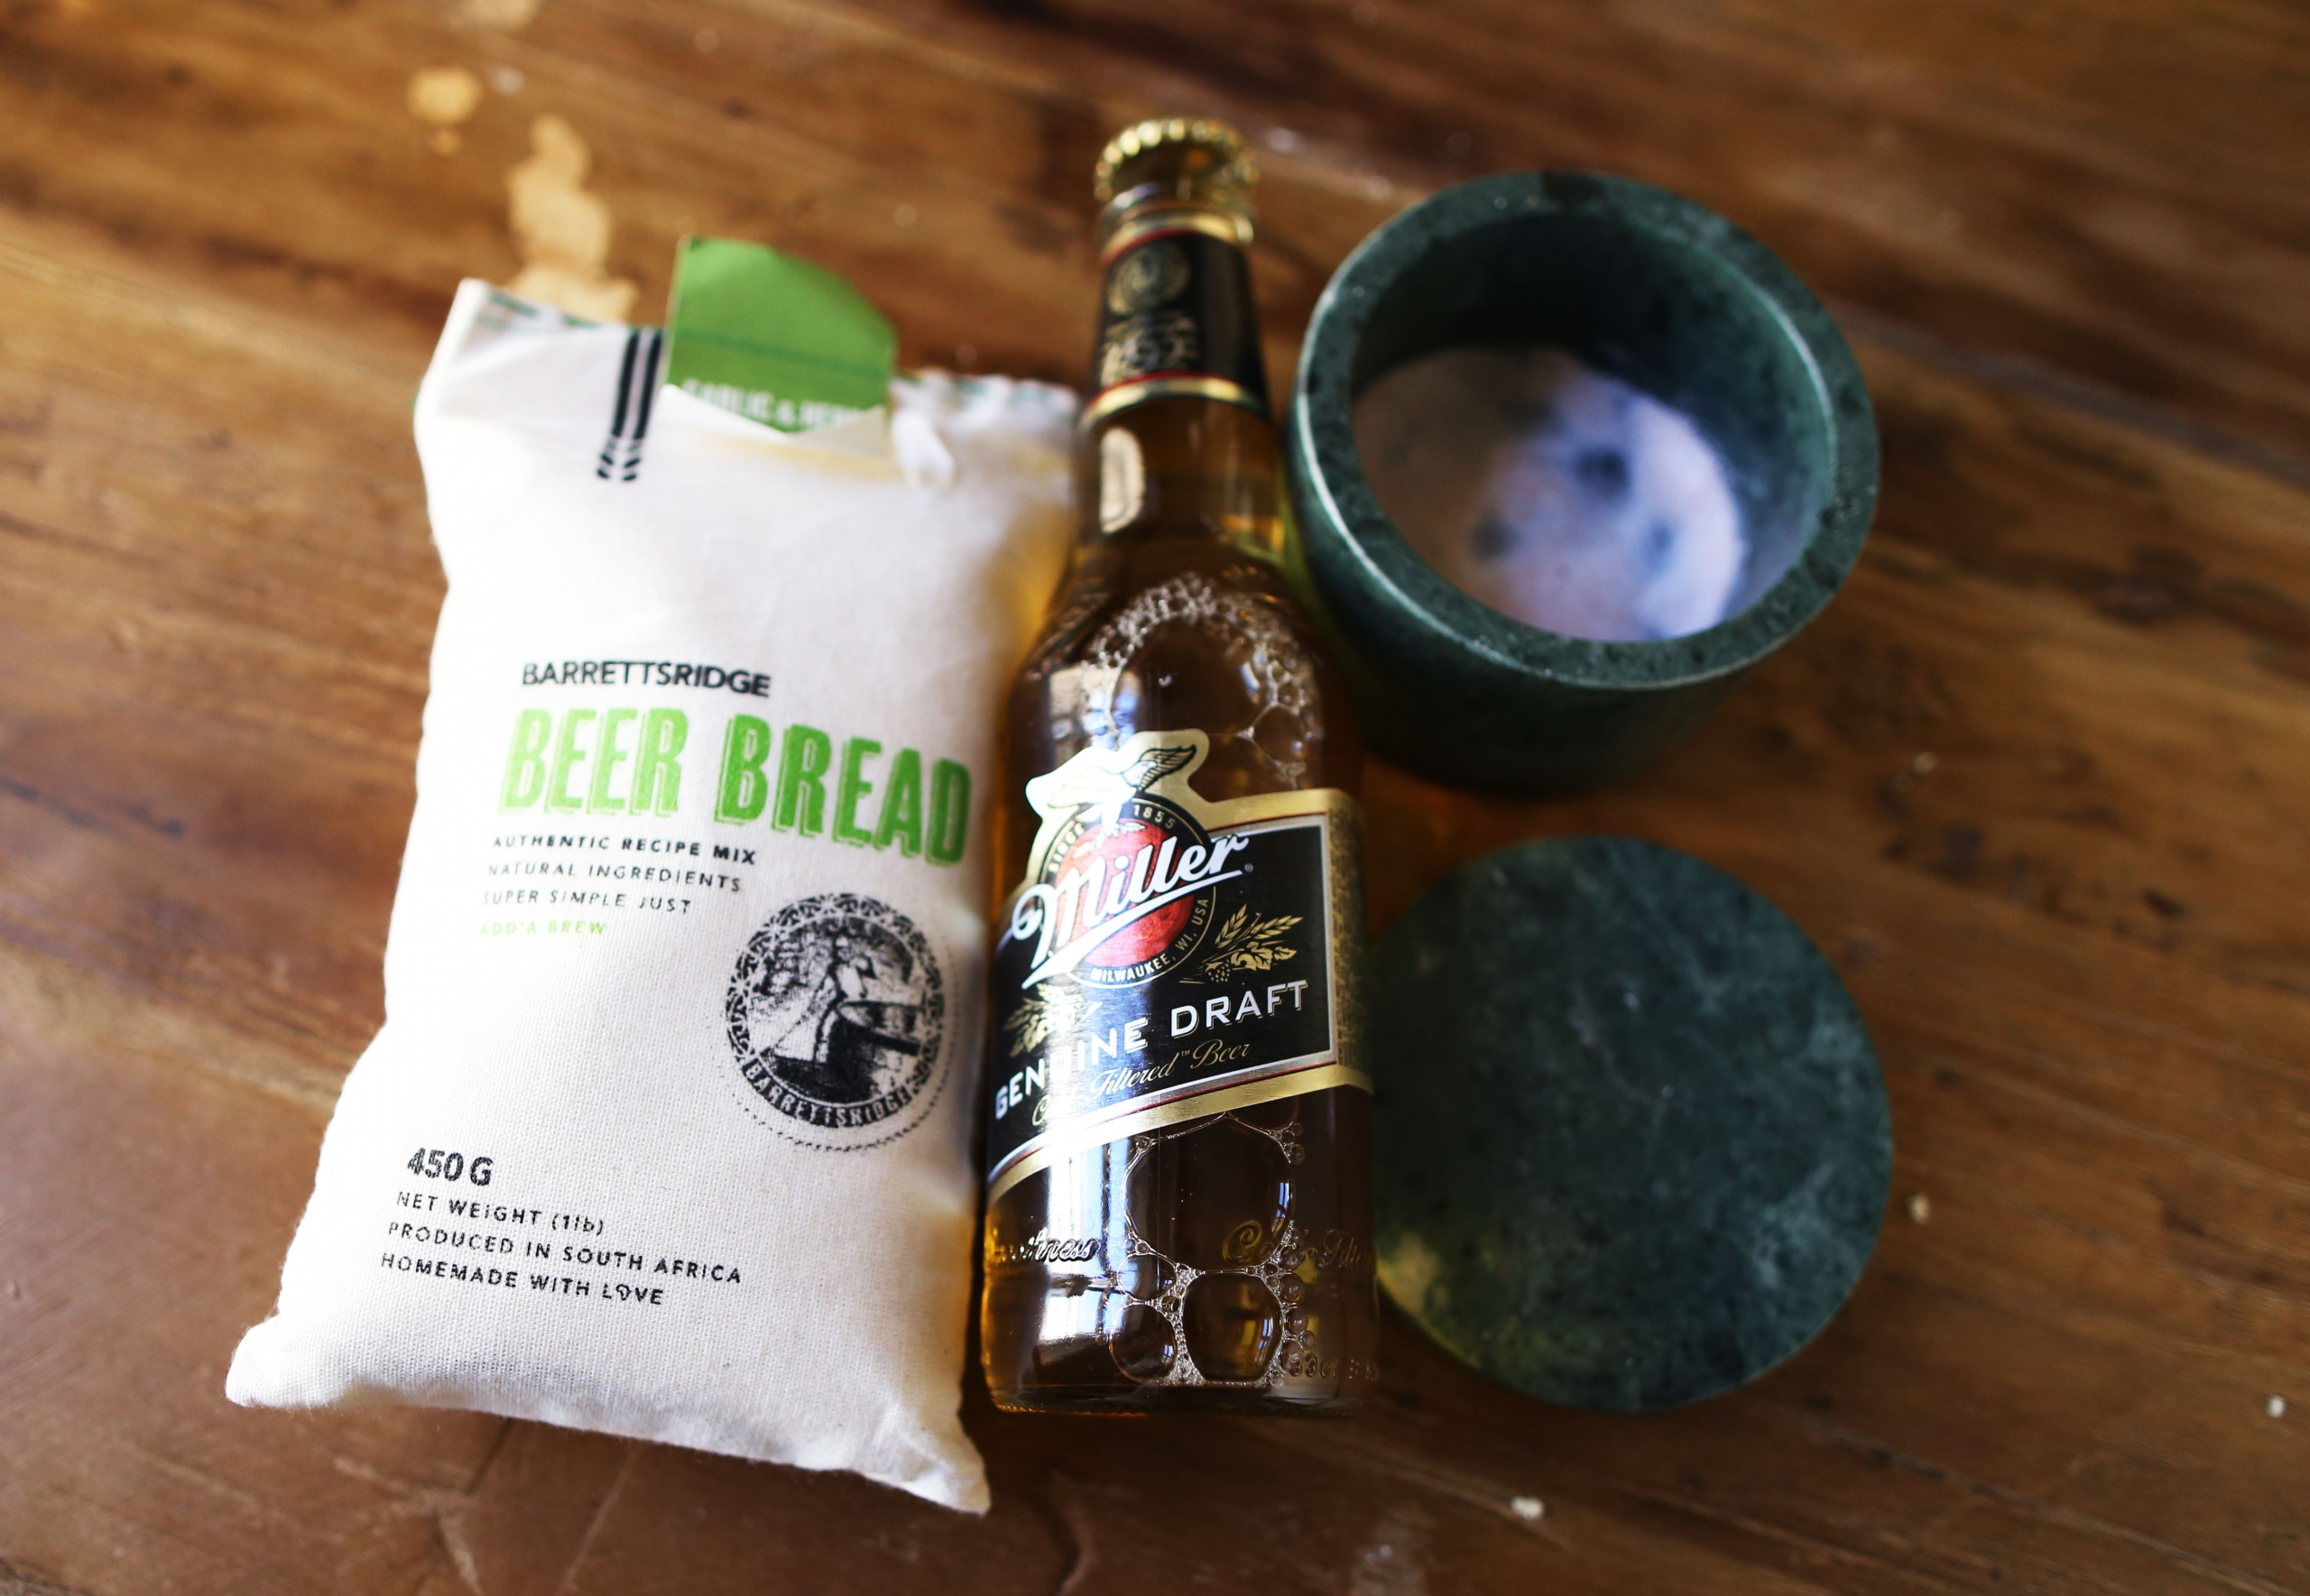 Beer bread – Ölbröd!